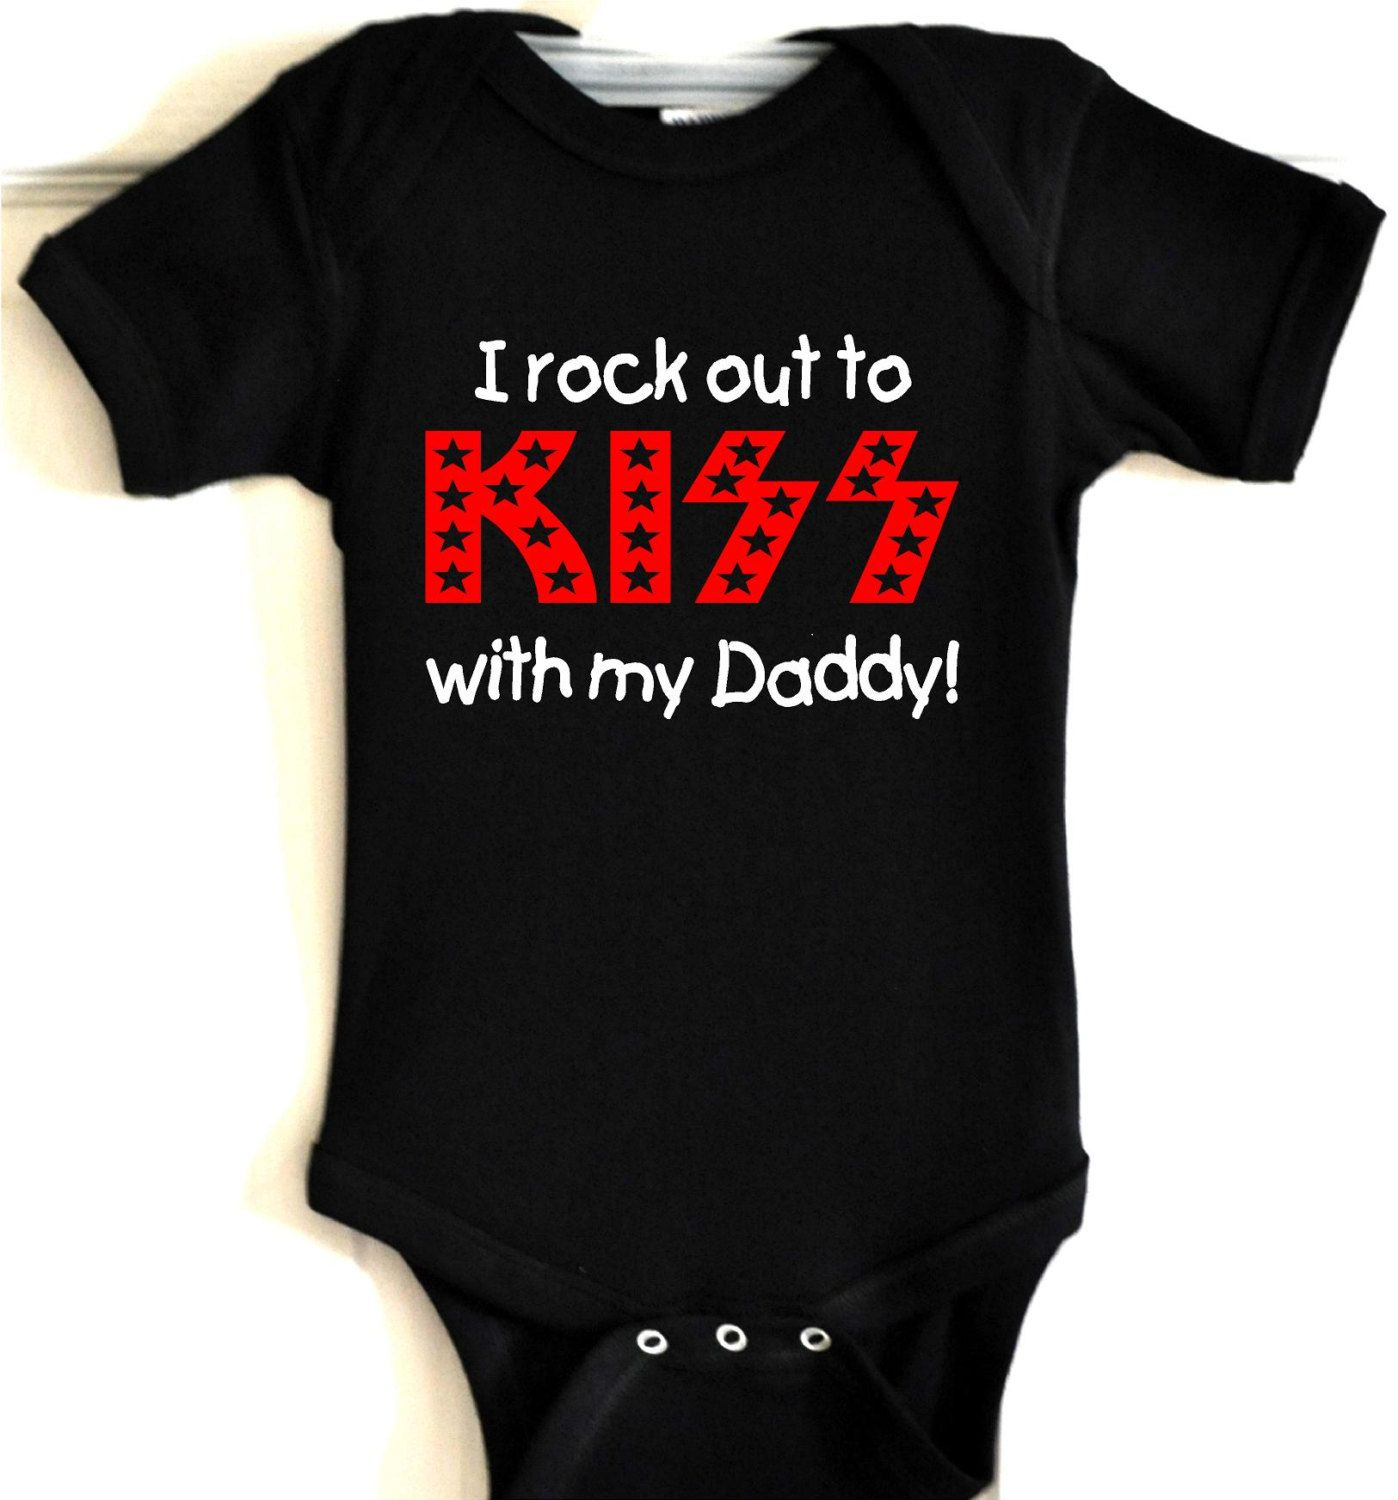 wRb i rock out to kiss with daddy mommy baby by